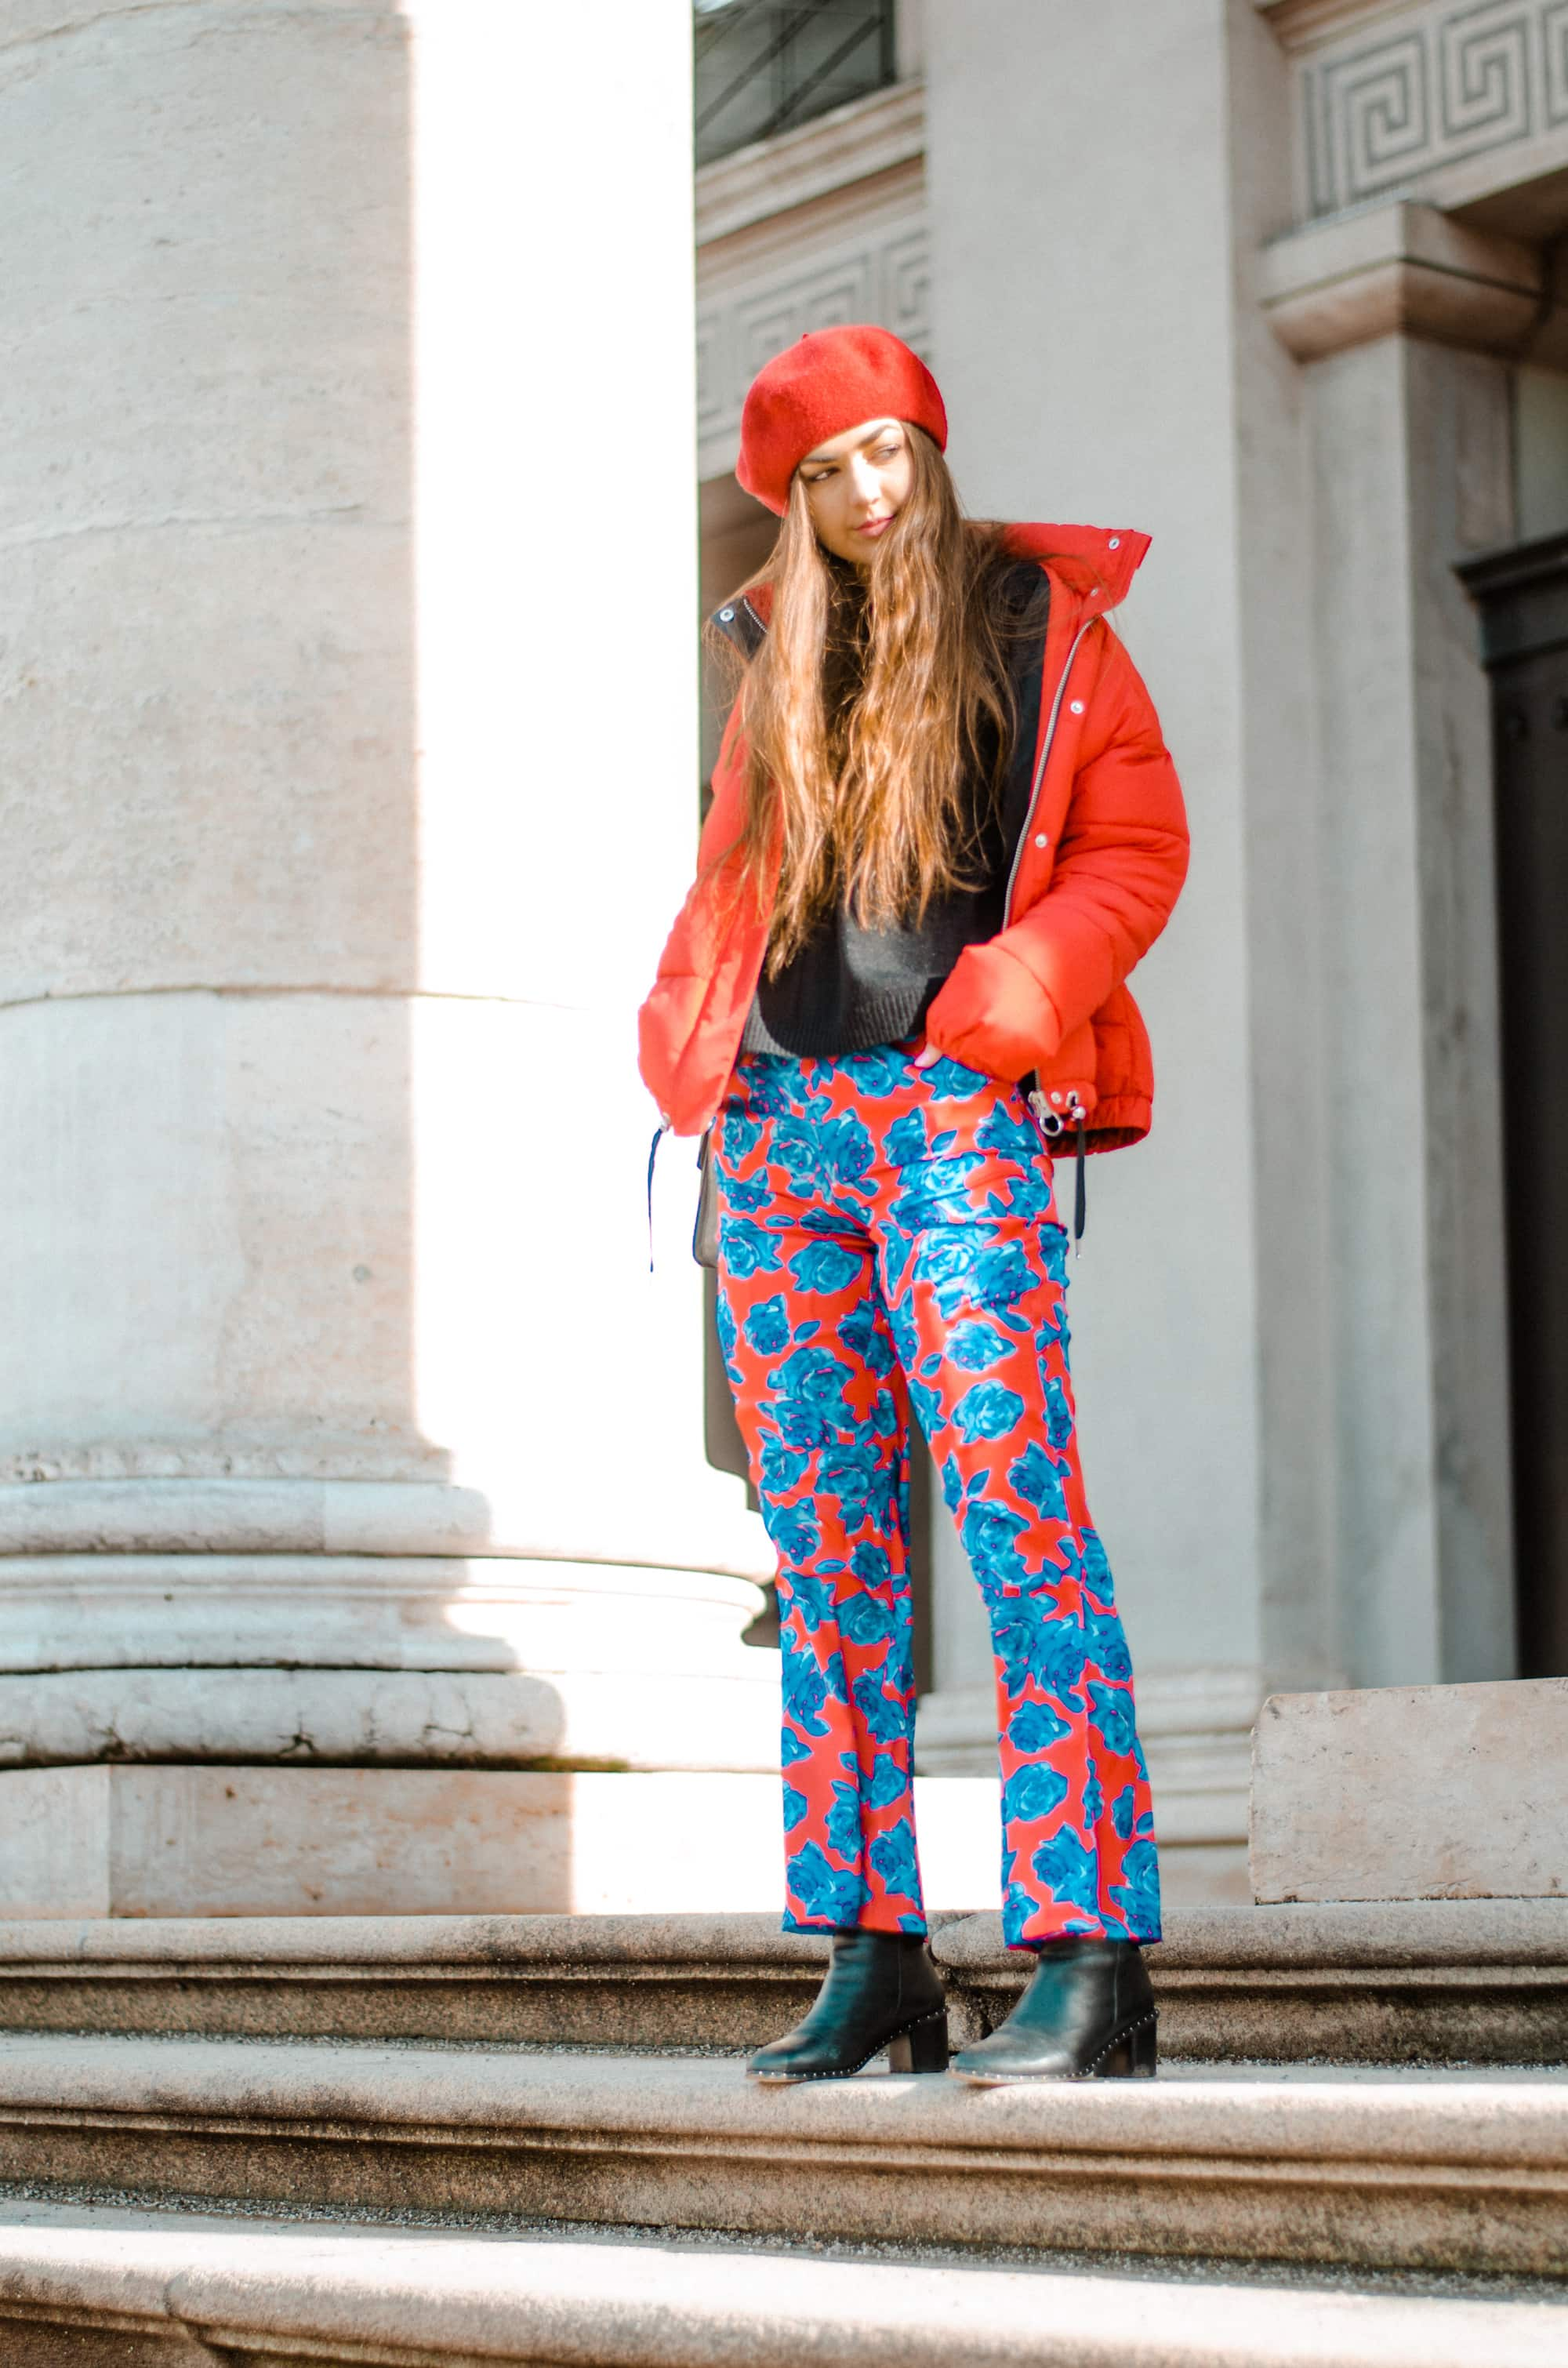 Outfit, Fashionblog, Fashion Blog, Fashion Blogazine, Online-Magazine, Beret, Flower Print, Down Jacket, Red, Blue, Red Outfit, Red Look, OOTD, Fashion Editorial